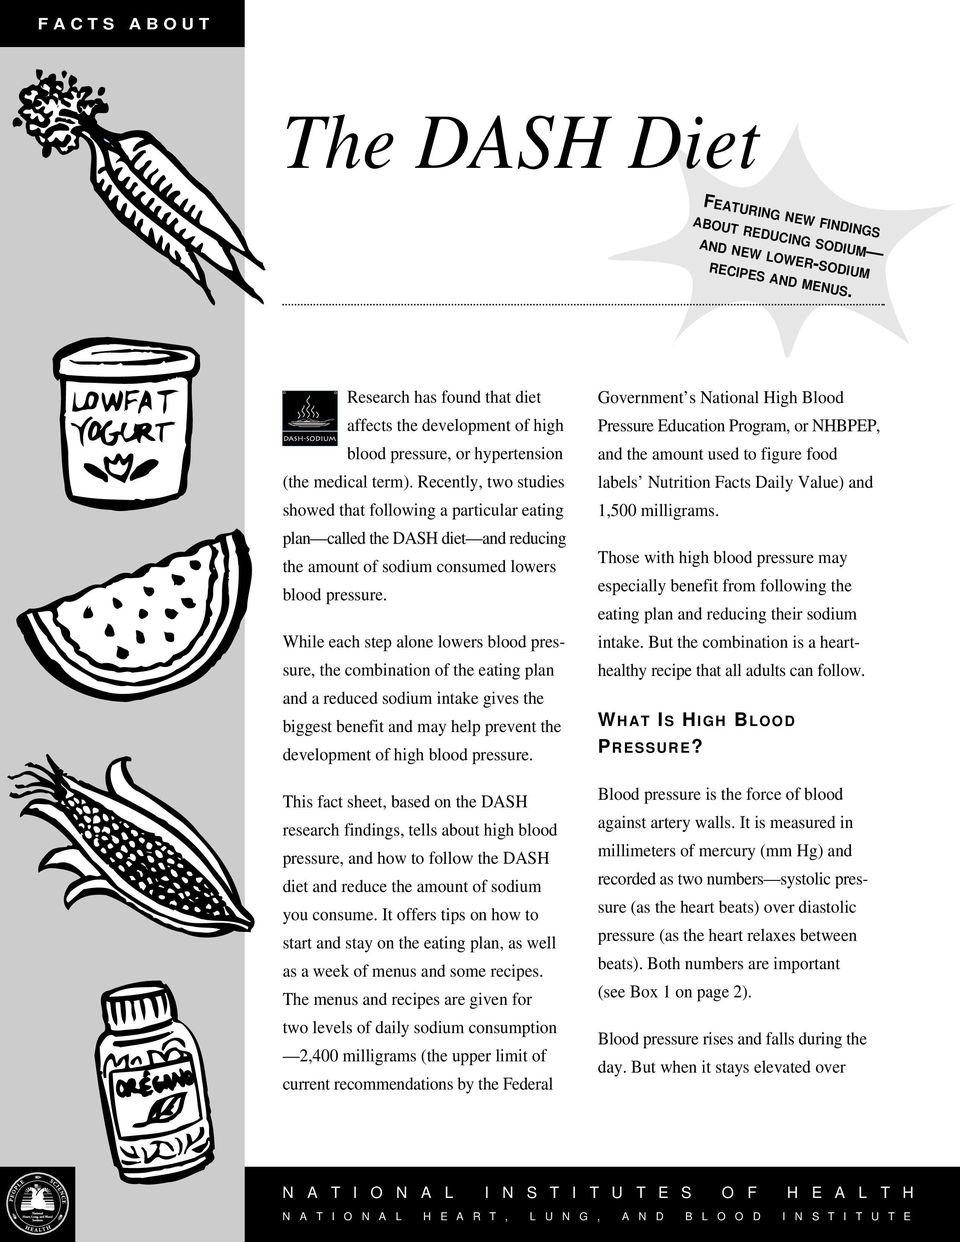 Recently, two studies showed that following a particular eating plan called the DASH diet and reducing the amount of sodium consumed lowers blood pressure.